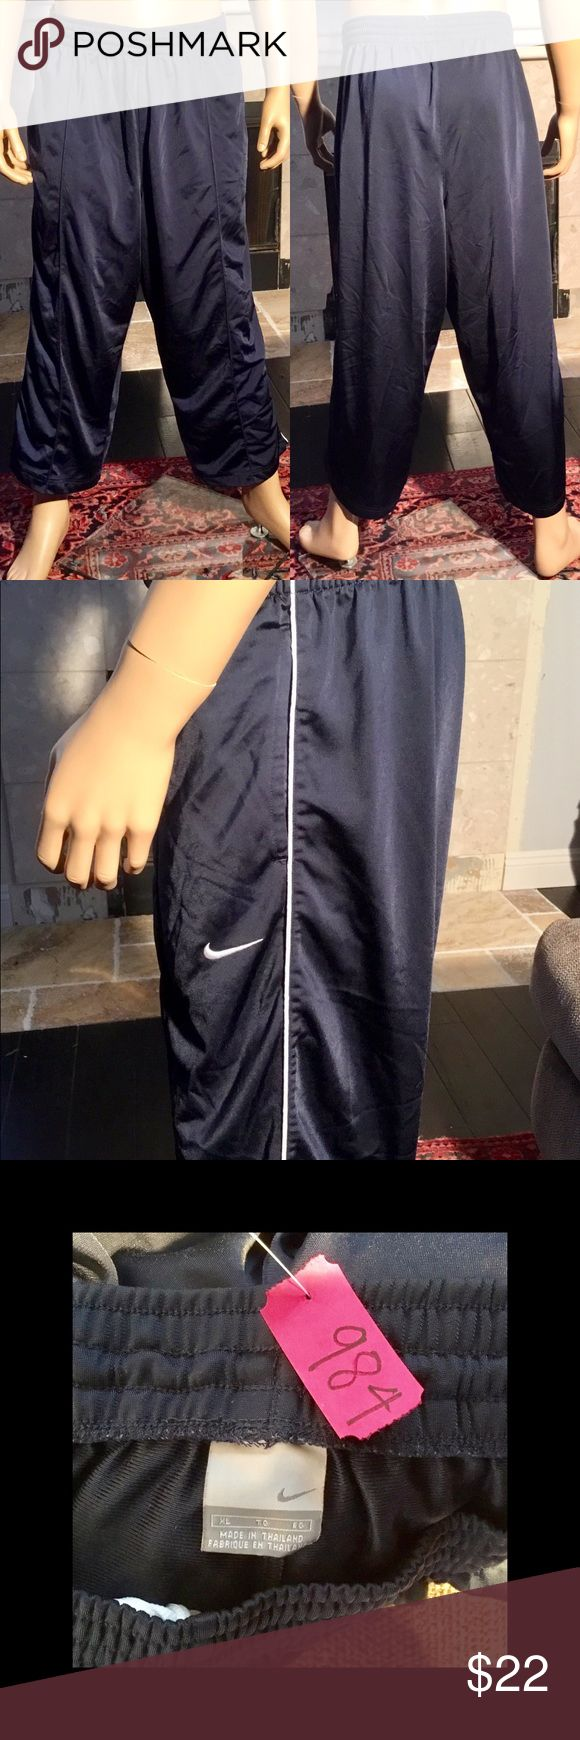 Nike Navy Blue Active Warmup Workout  Pants XL Nike Navy Blue Men's Active Warmup Workout Running Basketball Pants  Men's Size XL Approximate measurements are inseam 26, waist 18 Drawstring elastic waist Zipper at the hems In excellent used condition  From a smoke free home (984) Nike Pants Sweatpants & Joggers